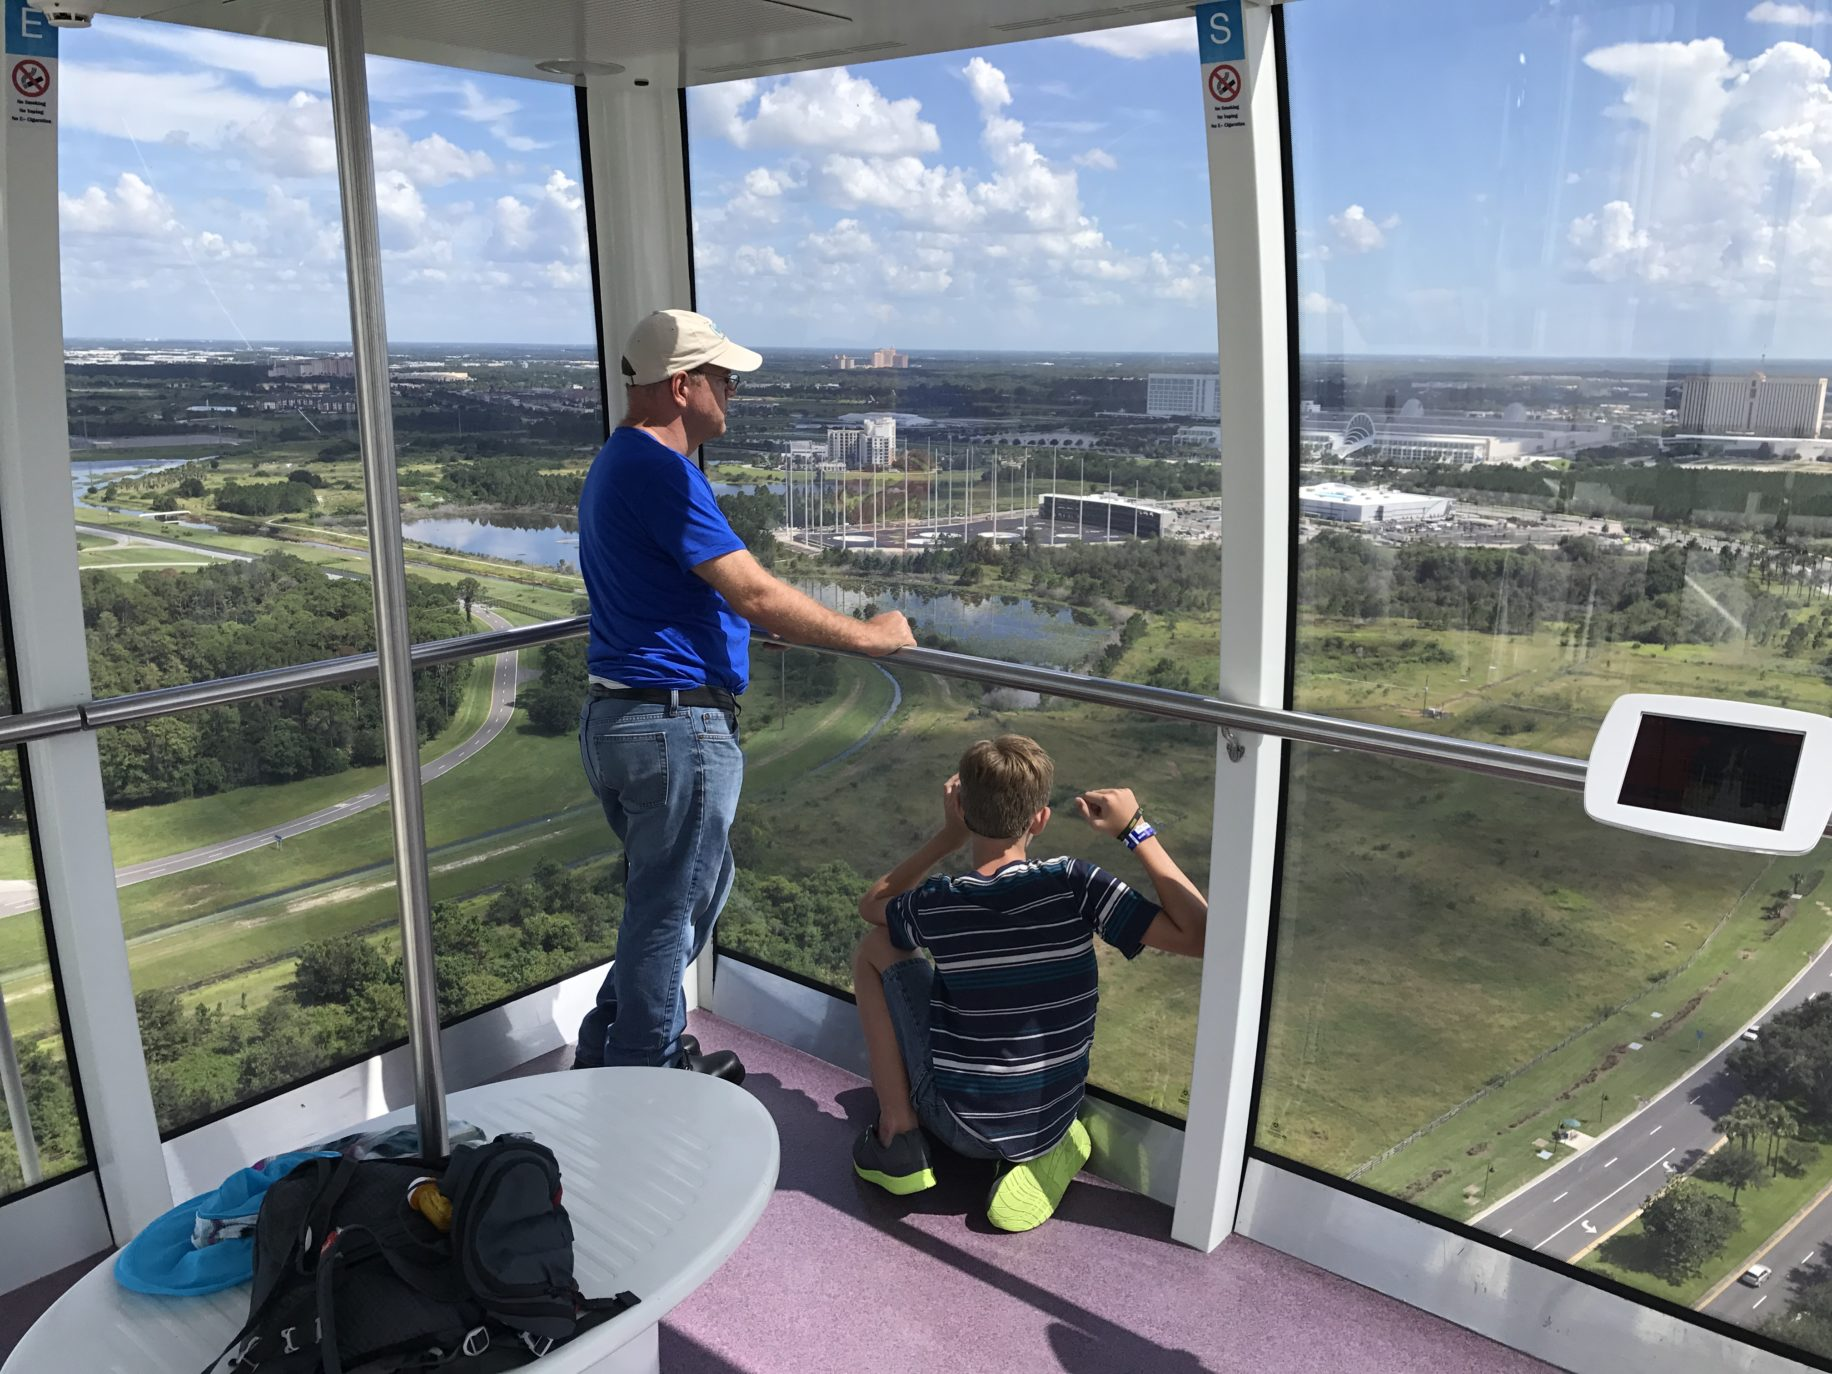 Relax and enjoy the view of the Orlando Eye Image: Dakster Sullivan